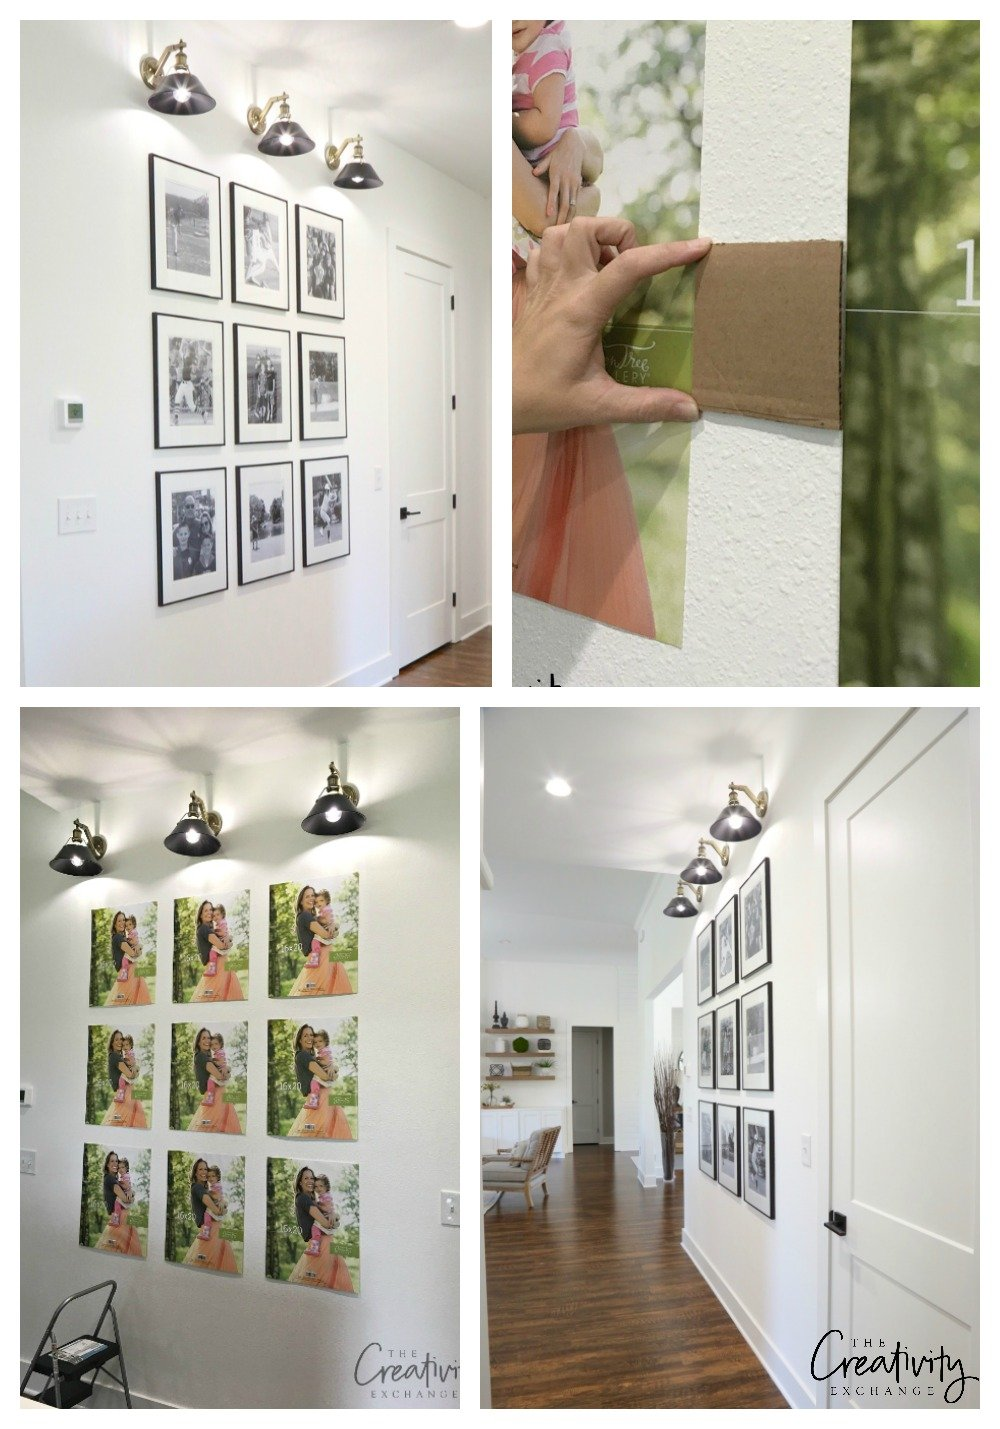 Shortcuts and tricks for creating a gallery wall